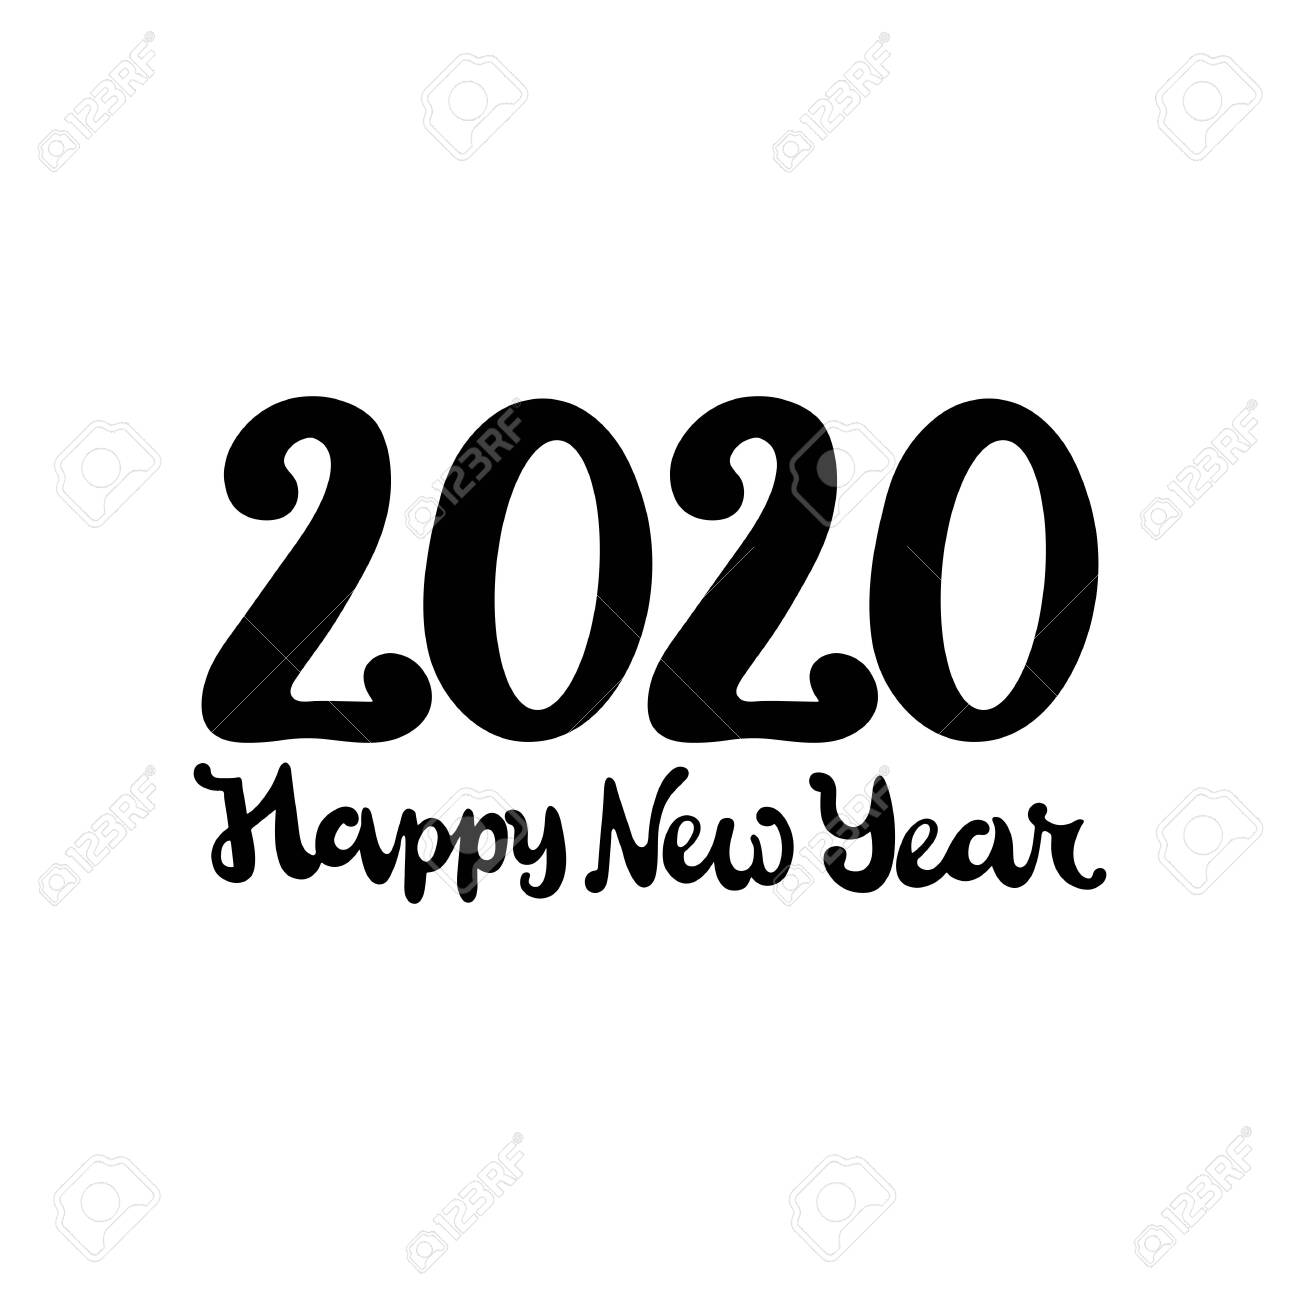 Happy New Year Clipart 2020 78